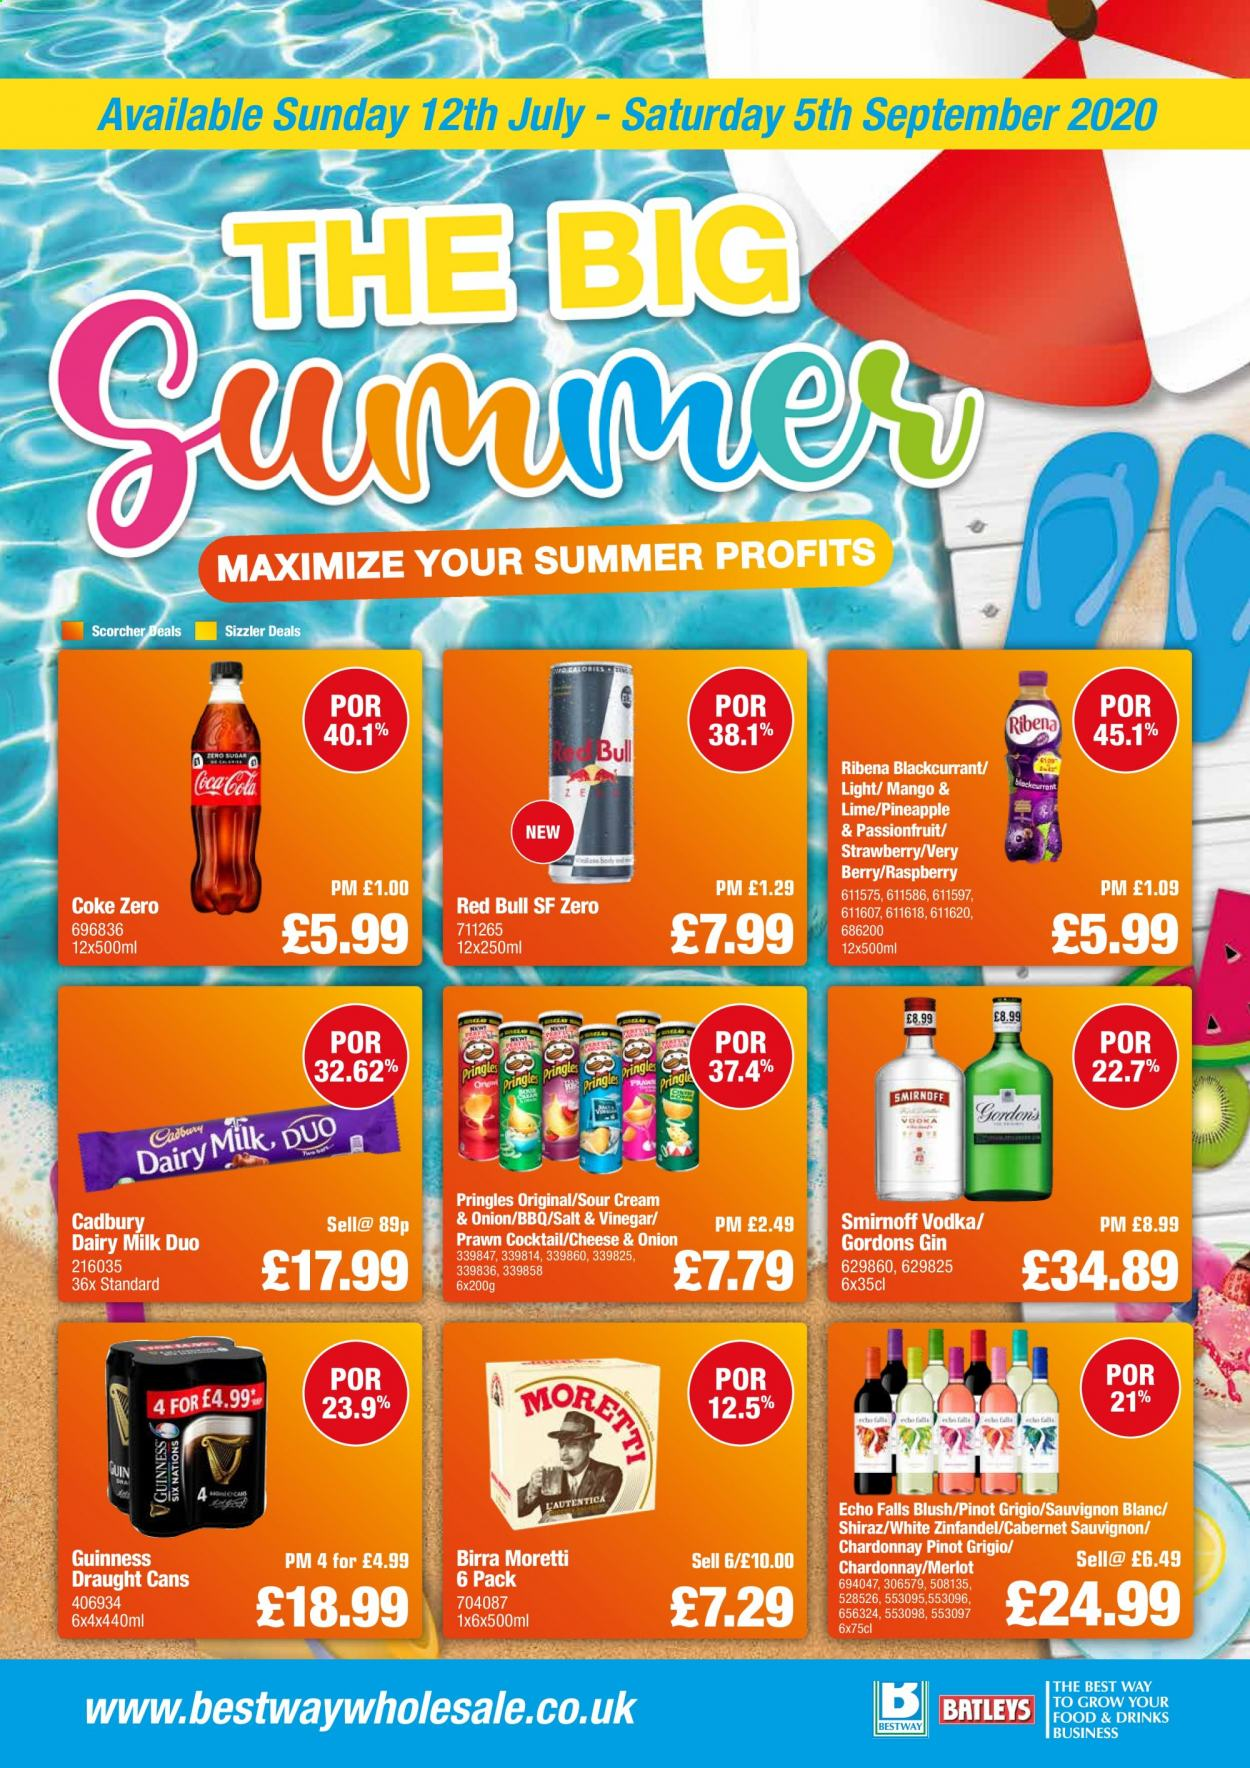 Bestway offer  - 12.7.2020 - 5.9.2020 - Sales products - cabernet sauvignon, coca-cola, cream, gin, mango, milk, smirnoff, sour cream, vinegar, vodka, pineapple, pringles, chardonnay, onion, cheese, berry, salt, prawn, strawberry, cadbury dairy, coke zero, merlot, cabernet, raspberry, barbecue, sauvignon. Page 1.